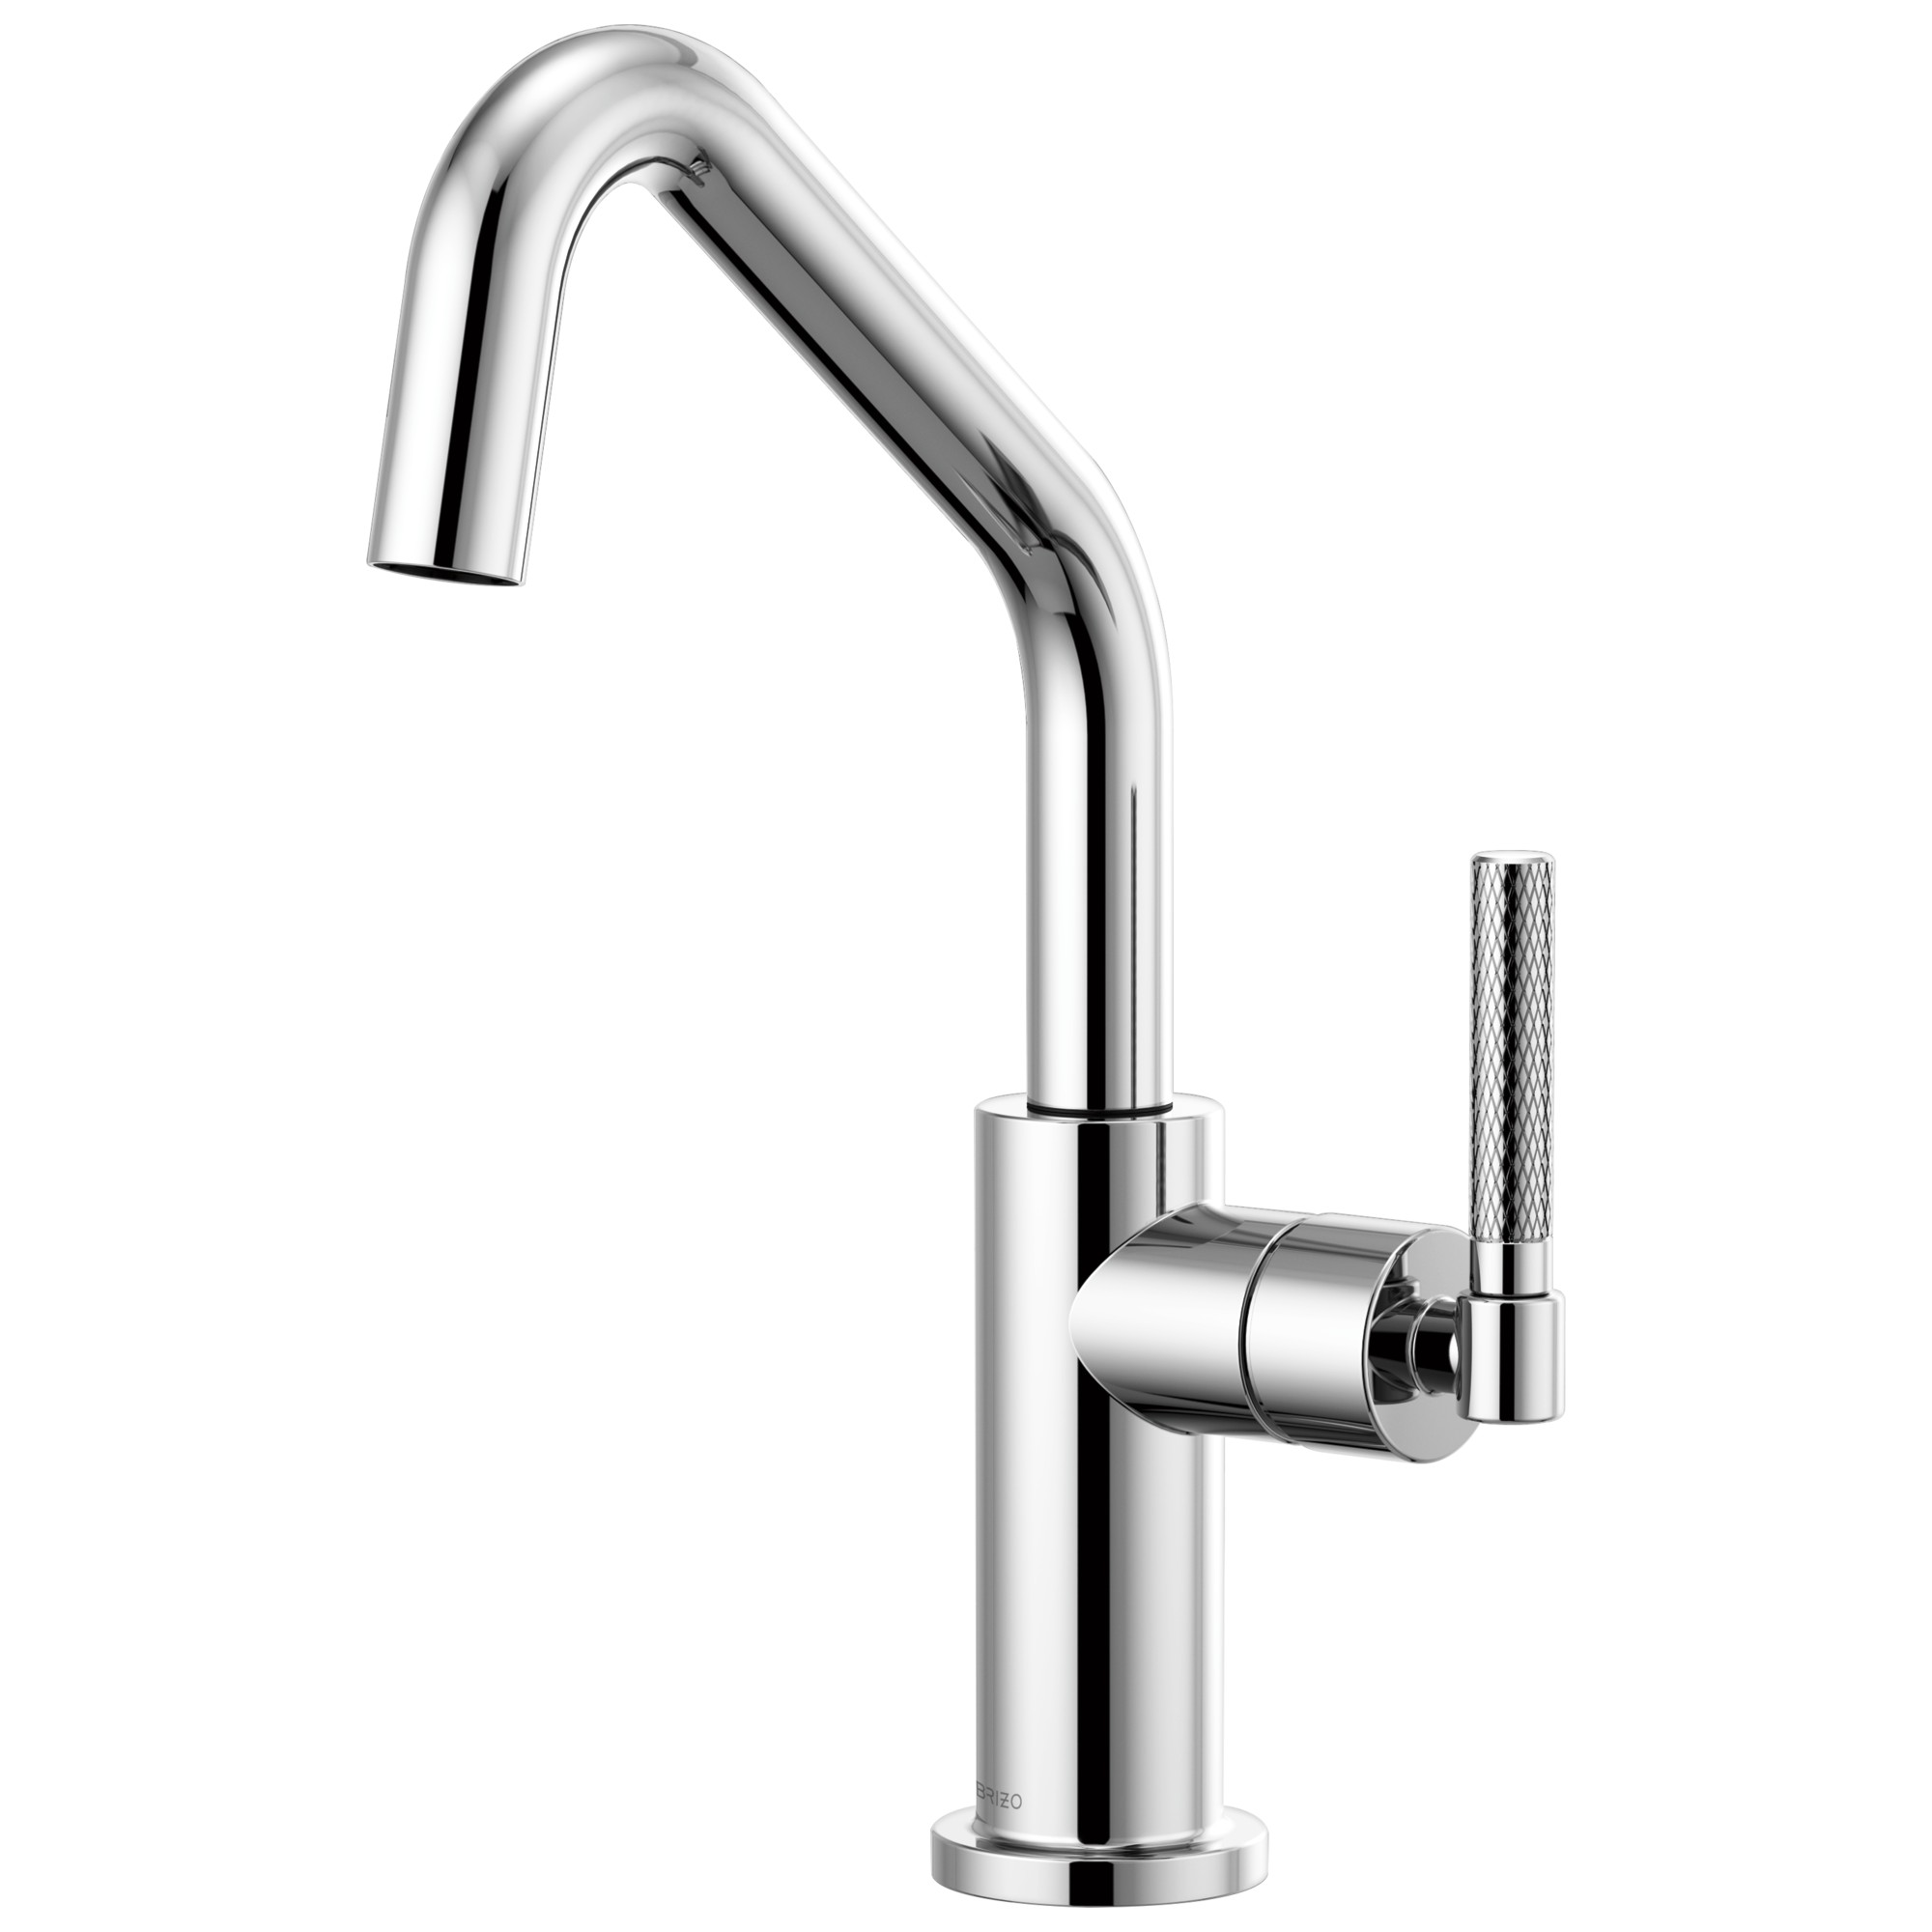 Brizo 61063LF-PC Litze Bar Faucet with Angled Spout and Knurled Handle - Chrome